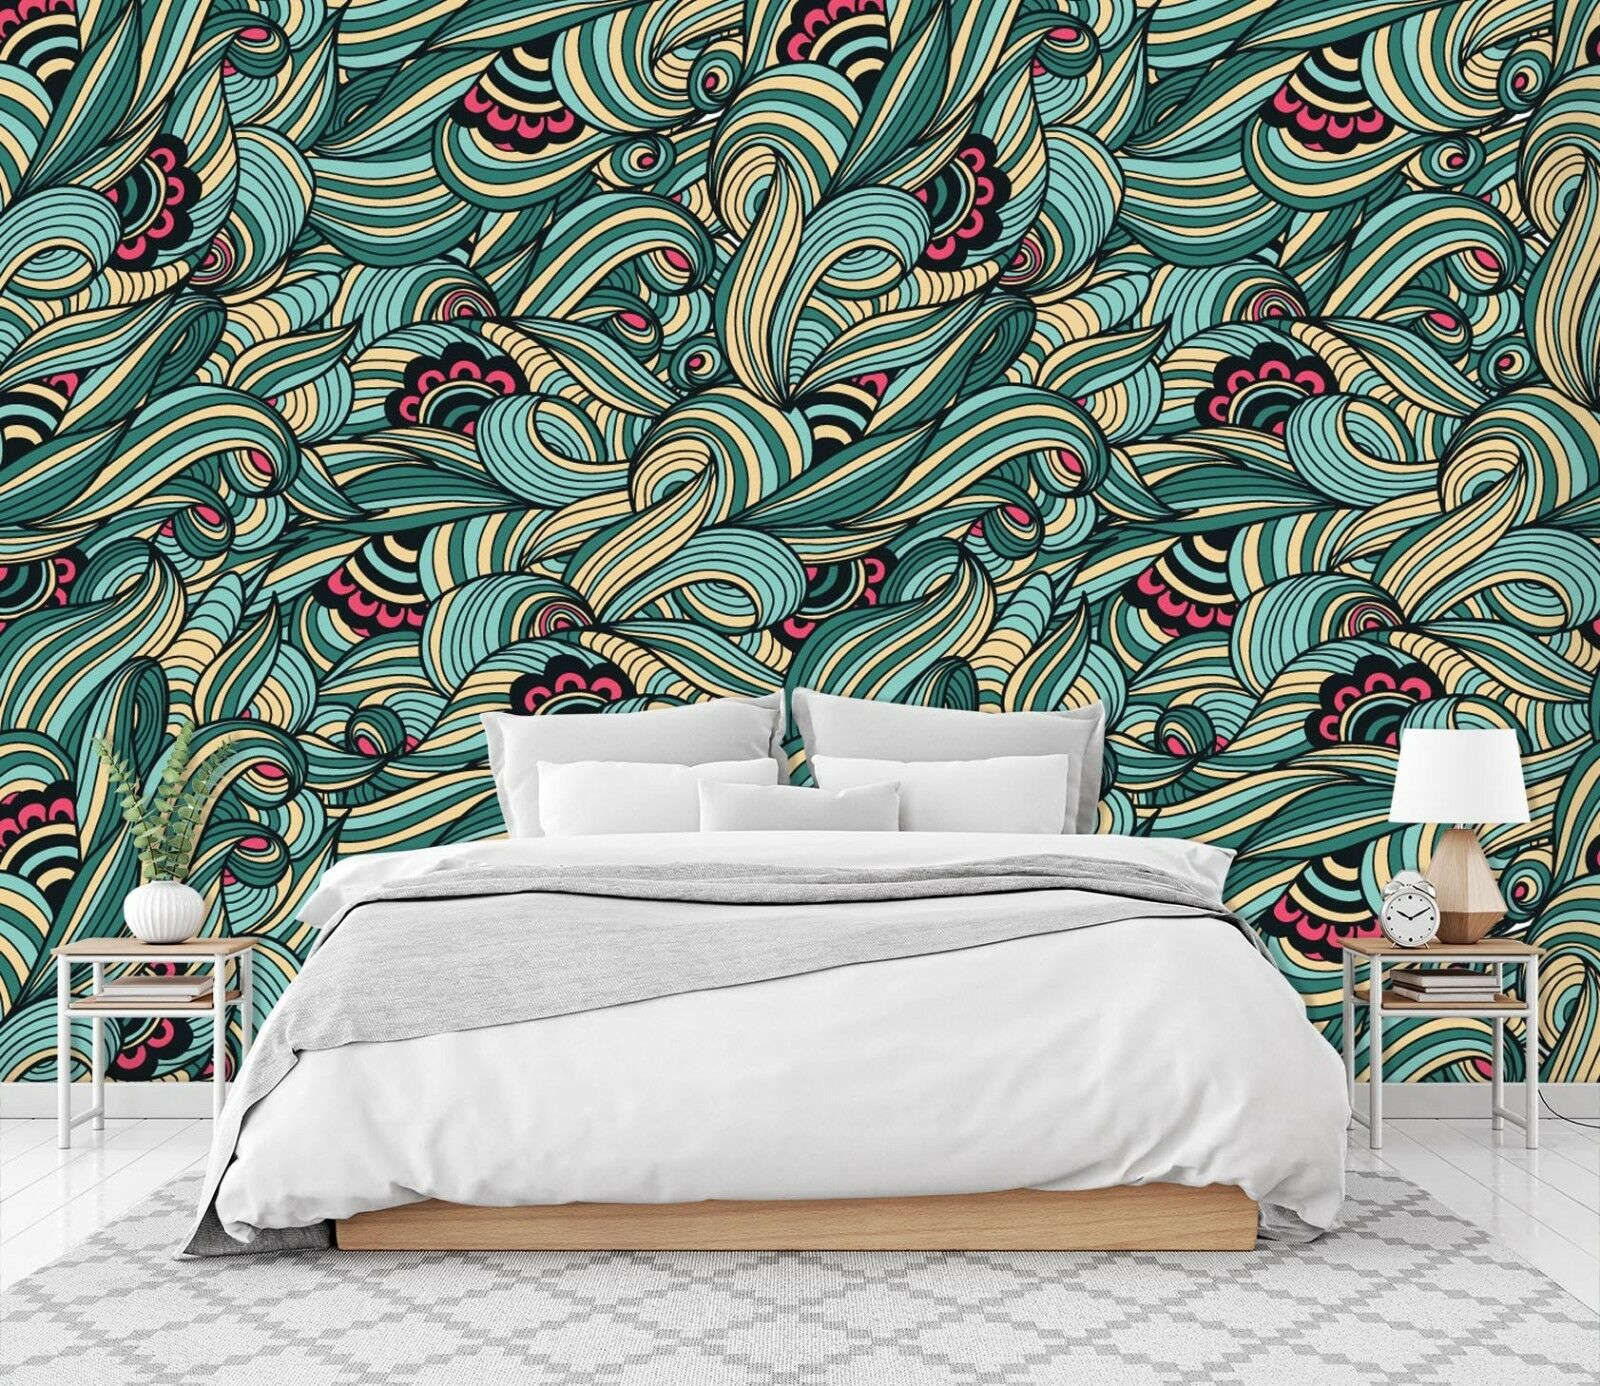 3D Abstract colord Painted 2  Wallpaper Mural Wall Print Decal Indoor Murals AU